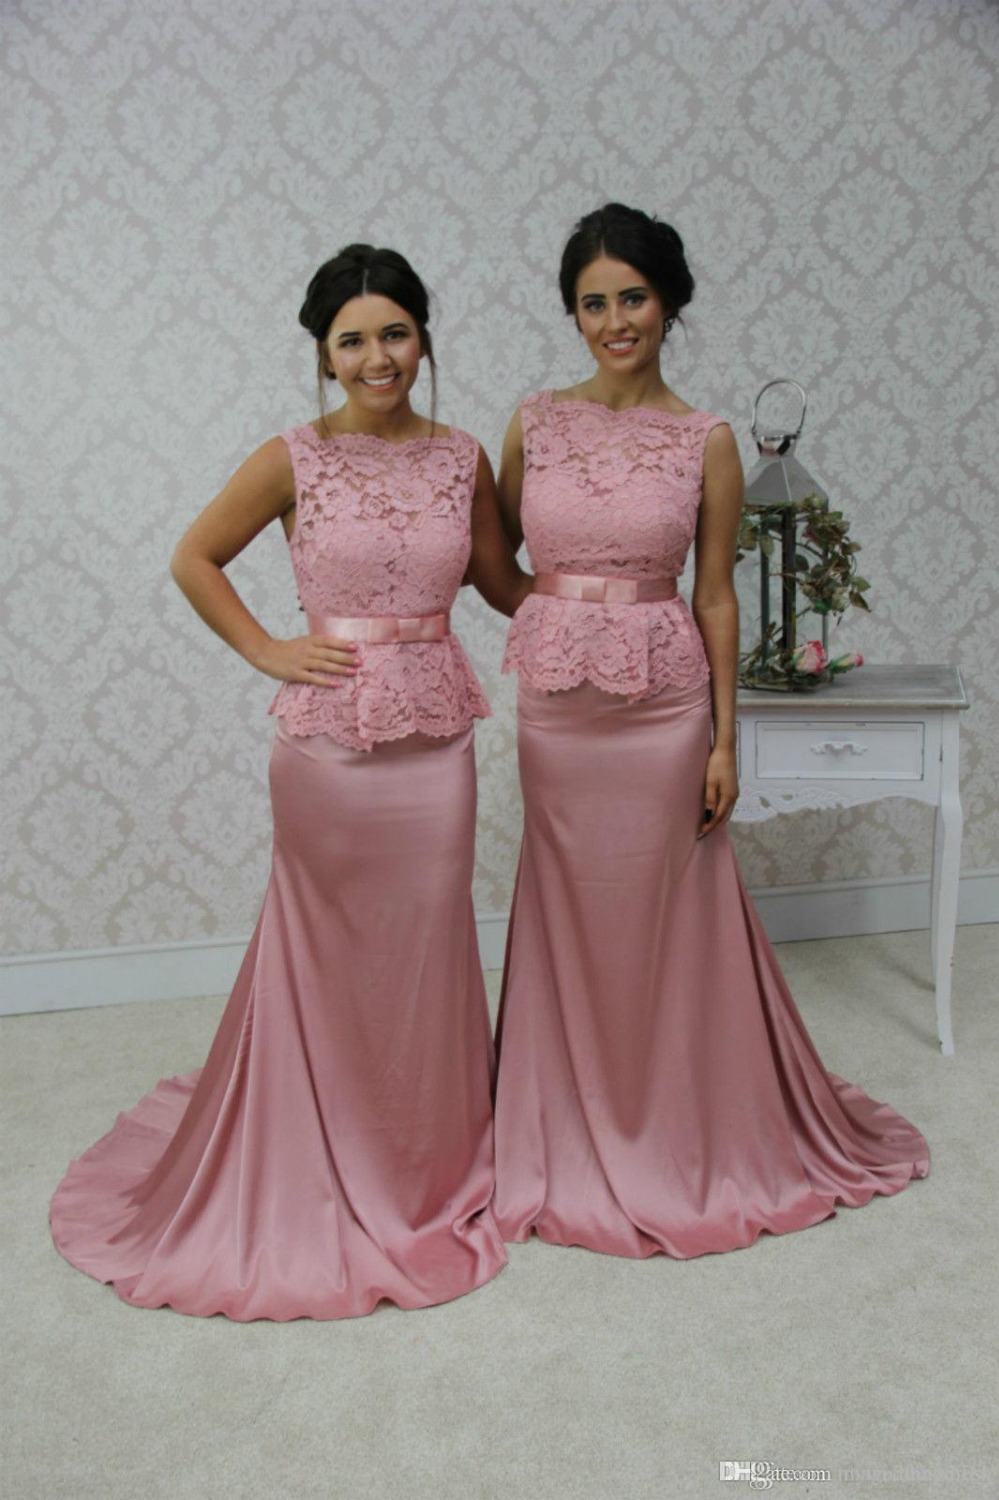 Wedding dresses maid of honor wedding dresses in jax for Maid of honor wedding dresses